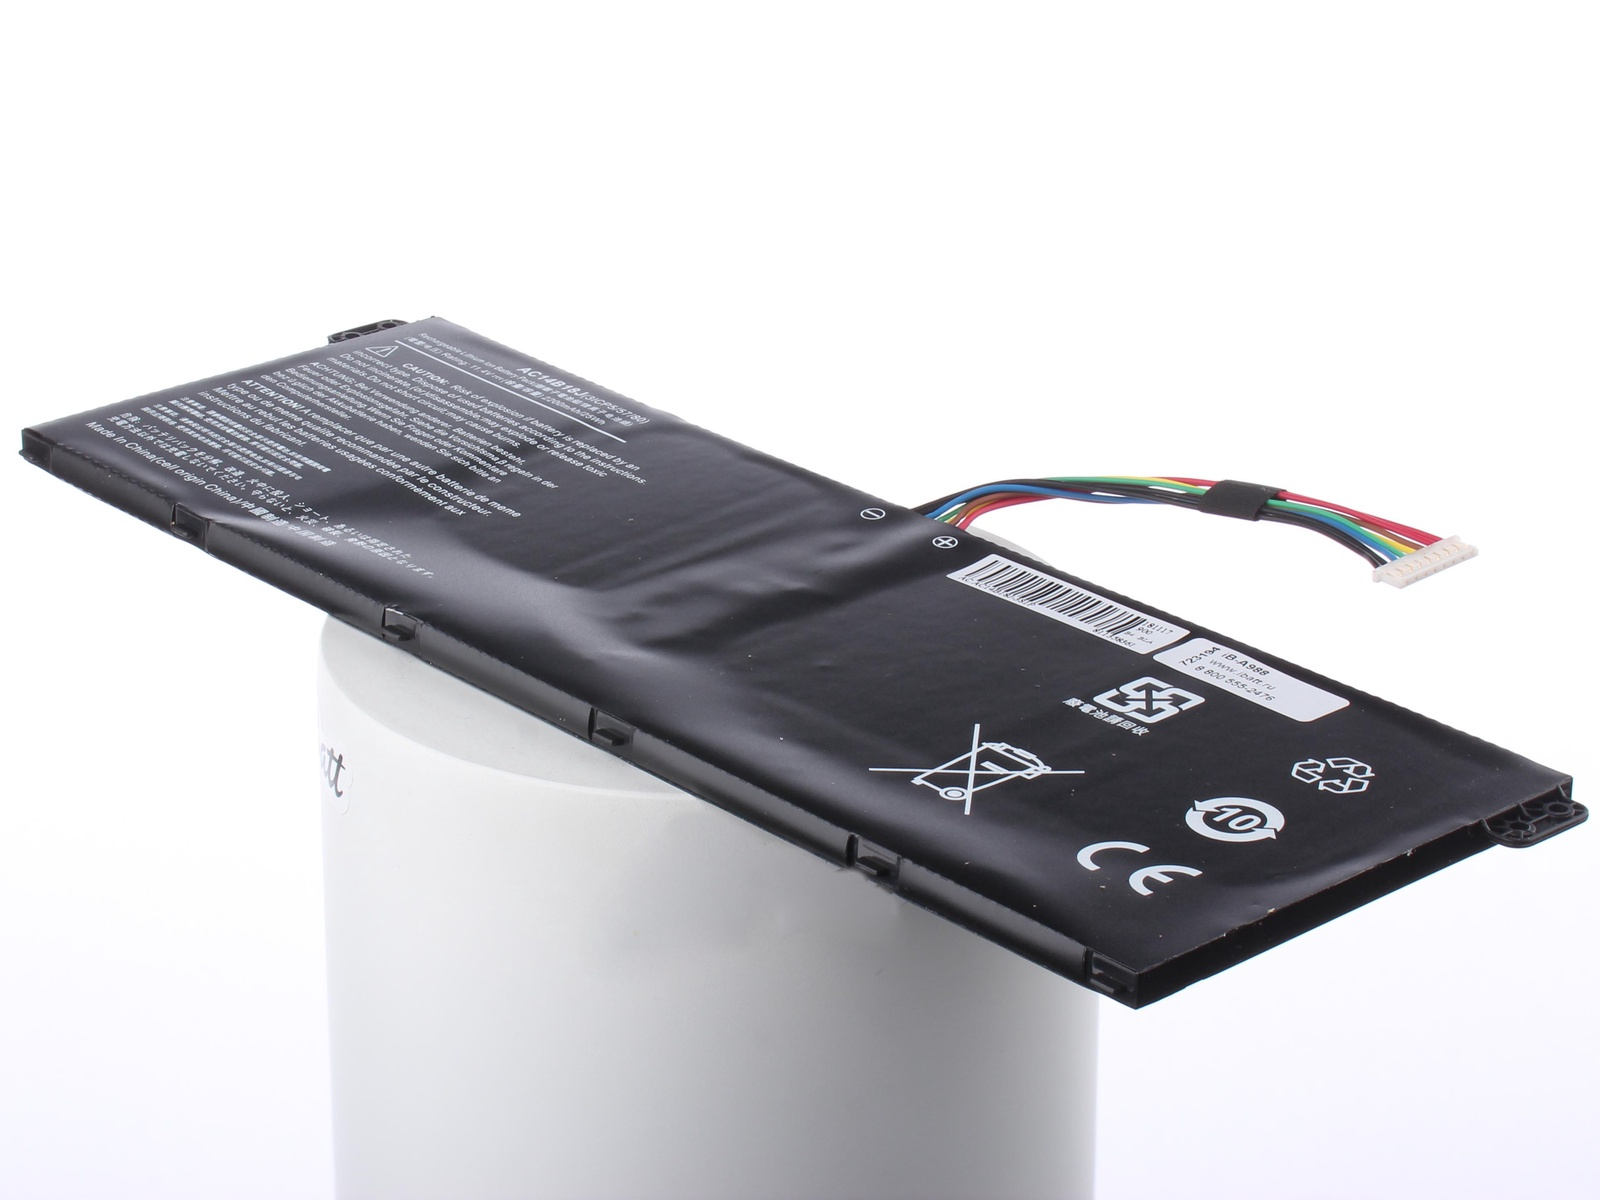 Аккумуляторная батарея iBatt iB-T7-A988 3220mAh для ноутбуков Acer Aspire ES1-521-65B1, ASPIRE ES1-531-P24E, Aspire ES1-731-C0W7, Aspire ES1-731-C4U8, Aspire ES1-731G-P5DH, ASPIRE ES1-731-P03F, ASPIRE ES1-131-C5UZ, Aspire ES1-331-P9FU, for acer aspire es1 531 n15w4 screen matrix for laptop 15 6 edp 30 pin led display